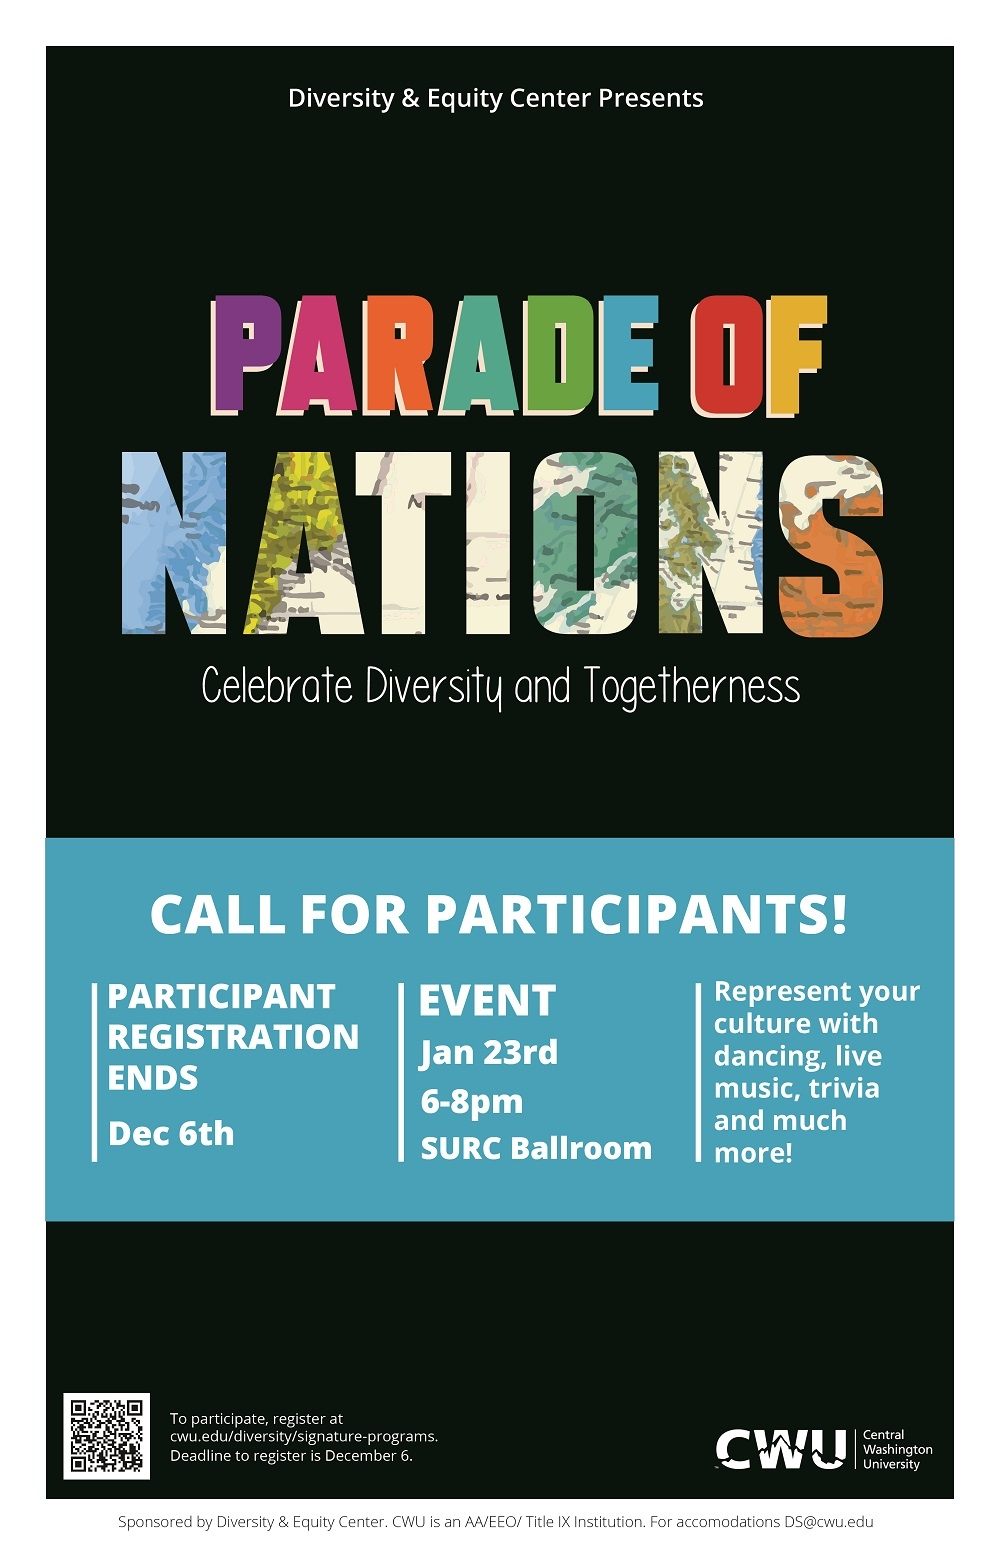 Parade of Nations call for participants poster. Participant registration ends December 6th. Represent your culture with dancing, live music, trivia, and much more!